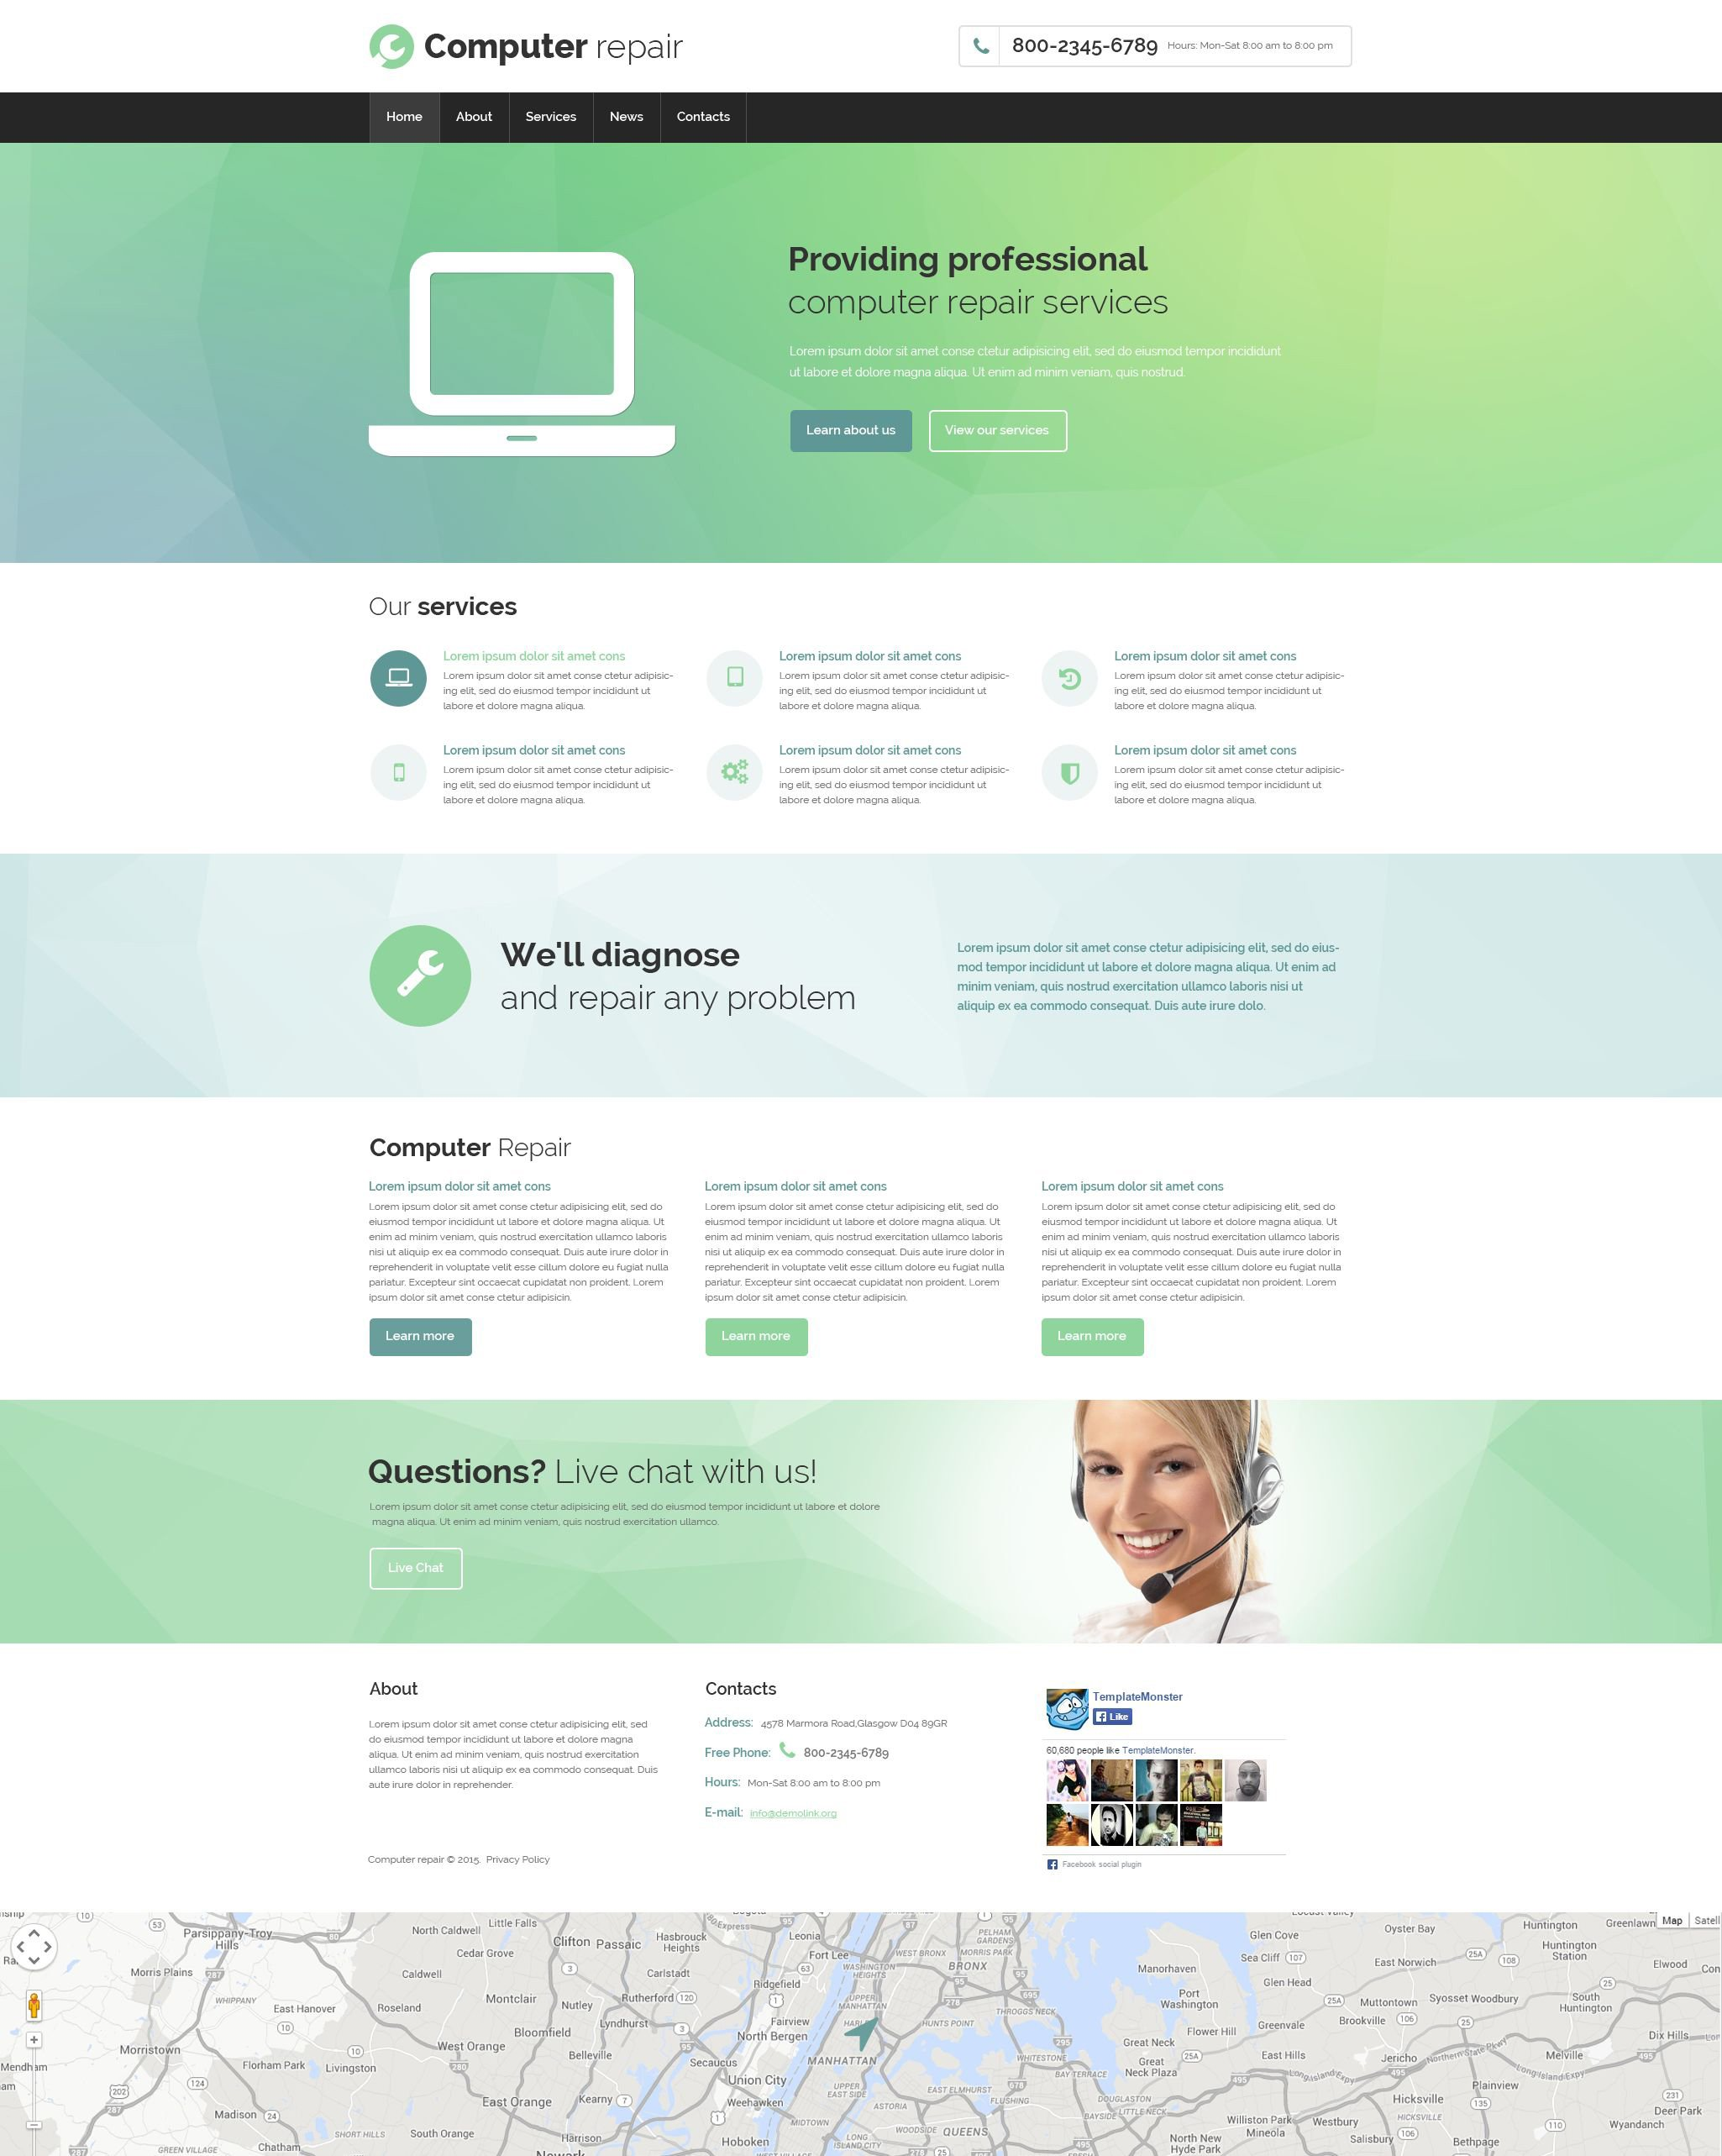 The Computer Repair Bootstrap Design 53695, one of the best website templates of its kind (computers, most popular), also known as computer repair website template, repair website template, computer website template, problems website template, help website template, monitor website template, mouse website template, prices website template, pricelist website template, data website template, recovery website template, electronics website template, osc website template, usb website template, OS/2 Windows Linux and related with computer repair, repair, computer, problems, help, monitor, mouse, prices, pricelist, data, recovery, electronics, osc, usb, OS/2 Windows Linux, etc.